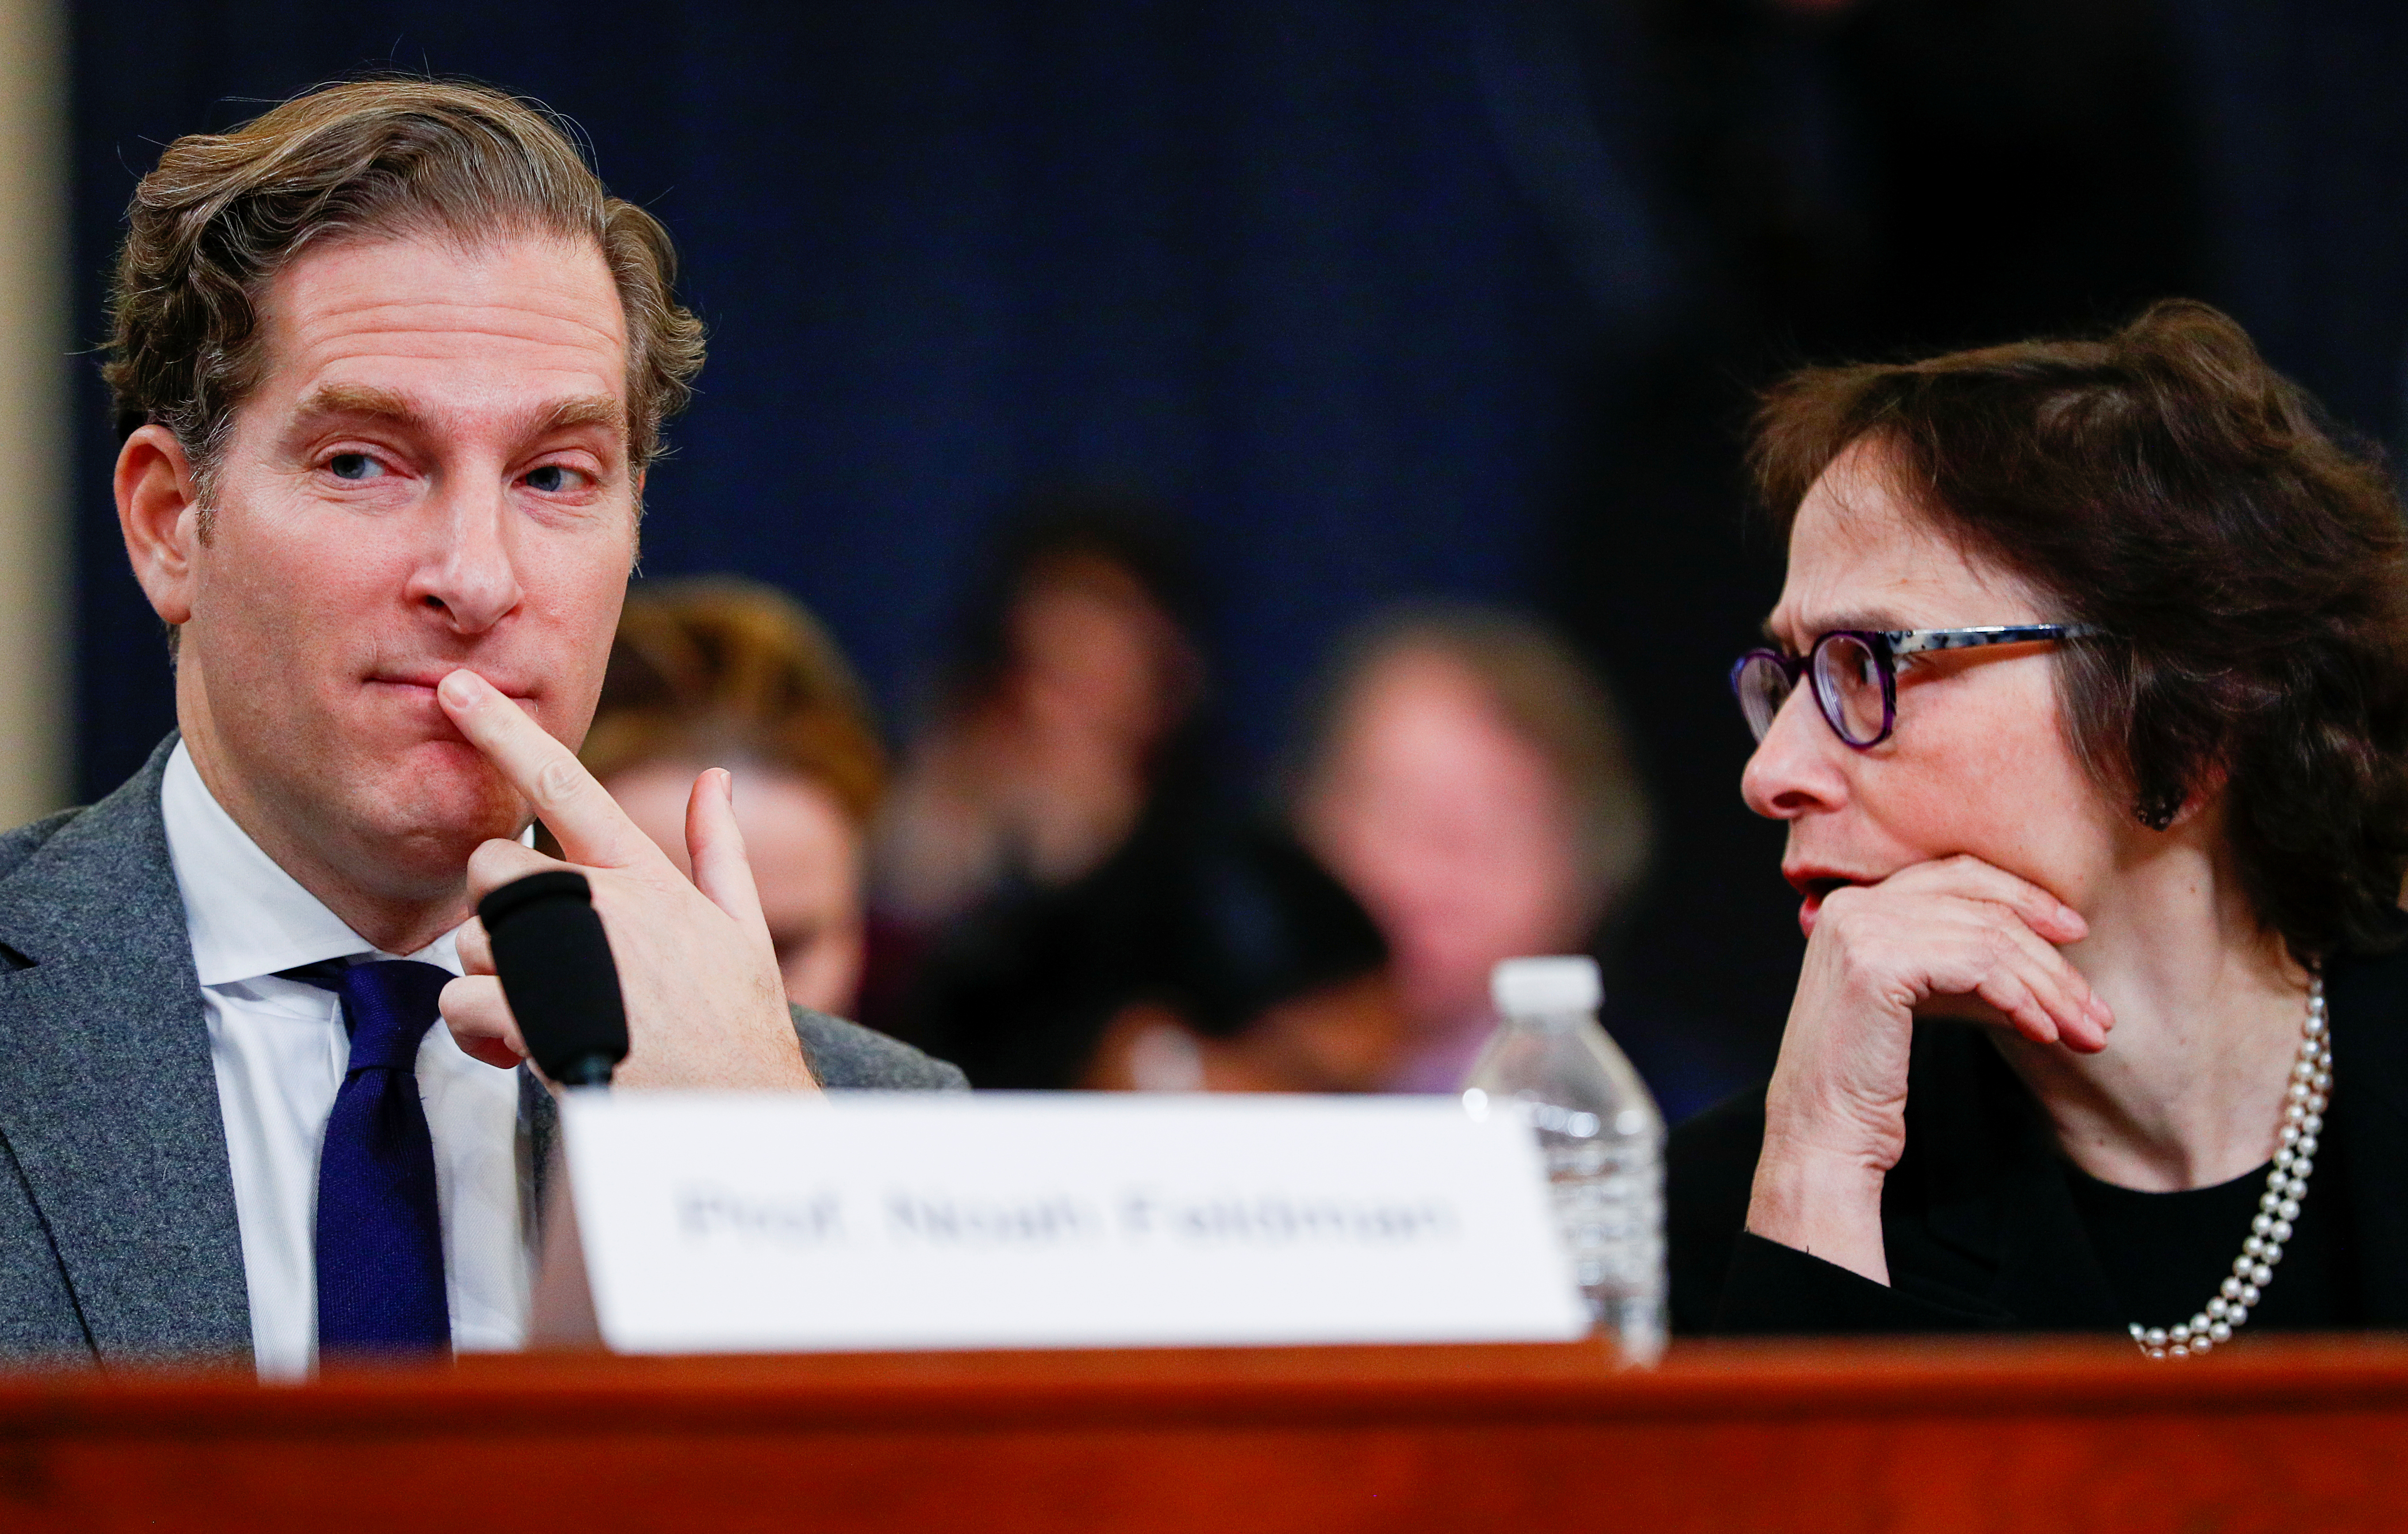 Pamela Karlan, professor of Public Interest Law and co-director of the Supreme Court Litigation Clinic at Stanford Law School, listens to Noah Feldman, professor of law and director of the Julis-Rabinowitz Program on Jewish and Israeli Law at Harvard Law School, as he testifies during a House Judiciary Committee hearing on the impeachment inquiry into U.S. President Donald Trump on Capitol Hill in Washington, U.S., Dec.4, 2019. REUTERS/Tom Brenner